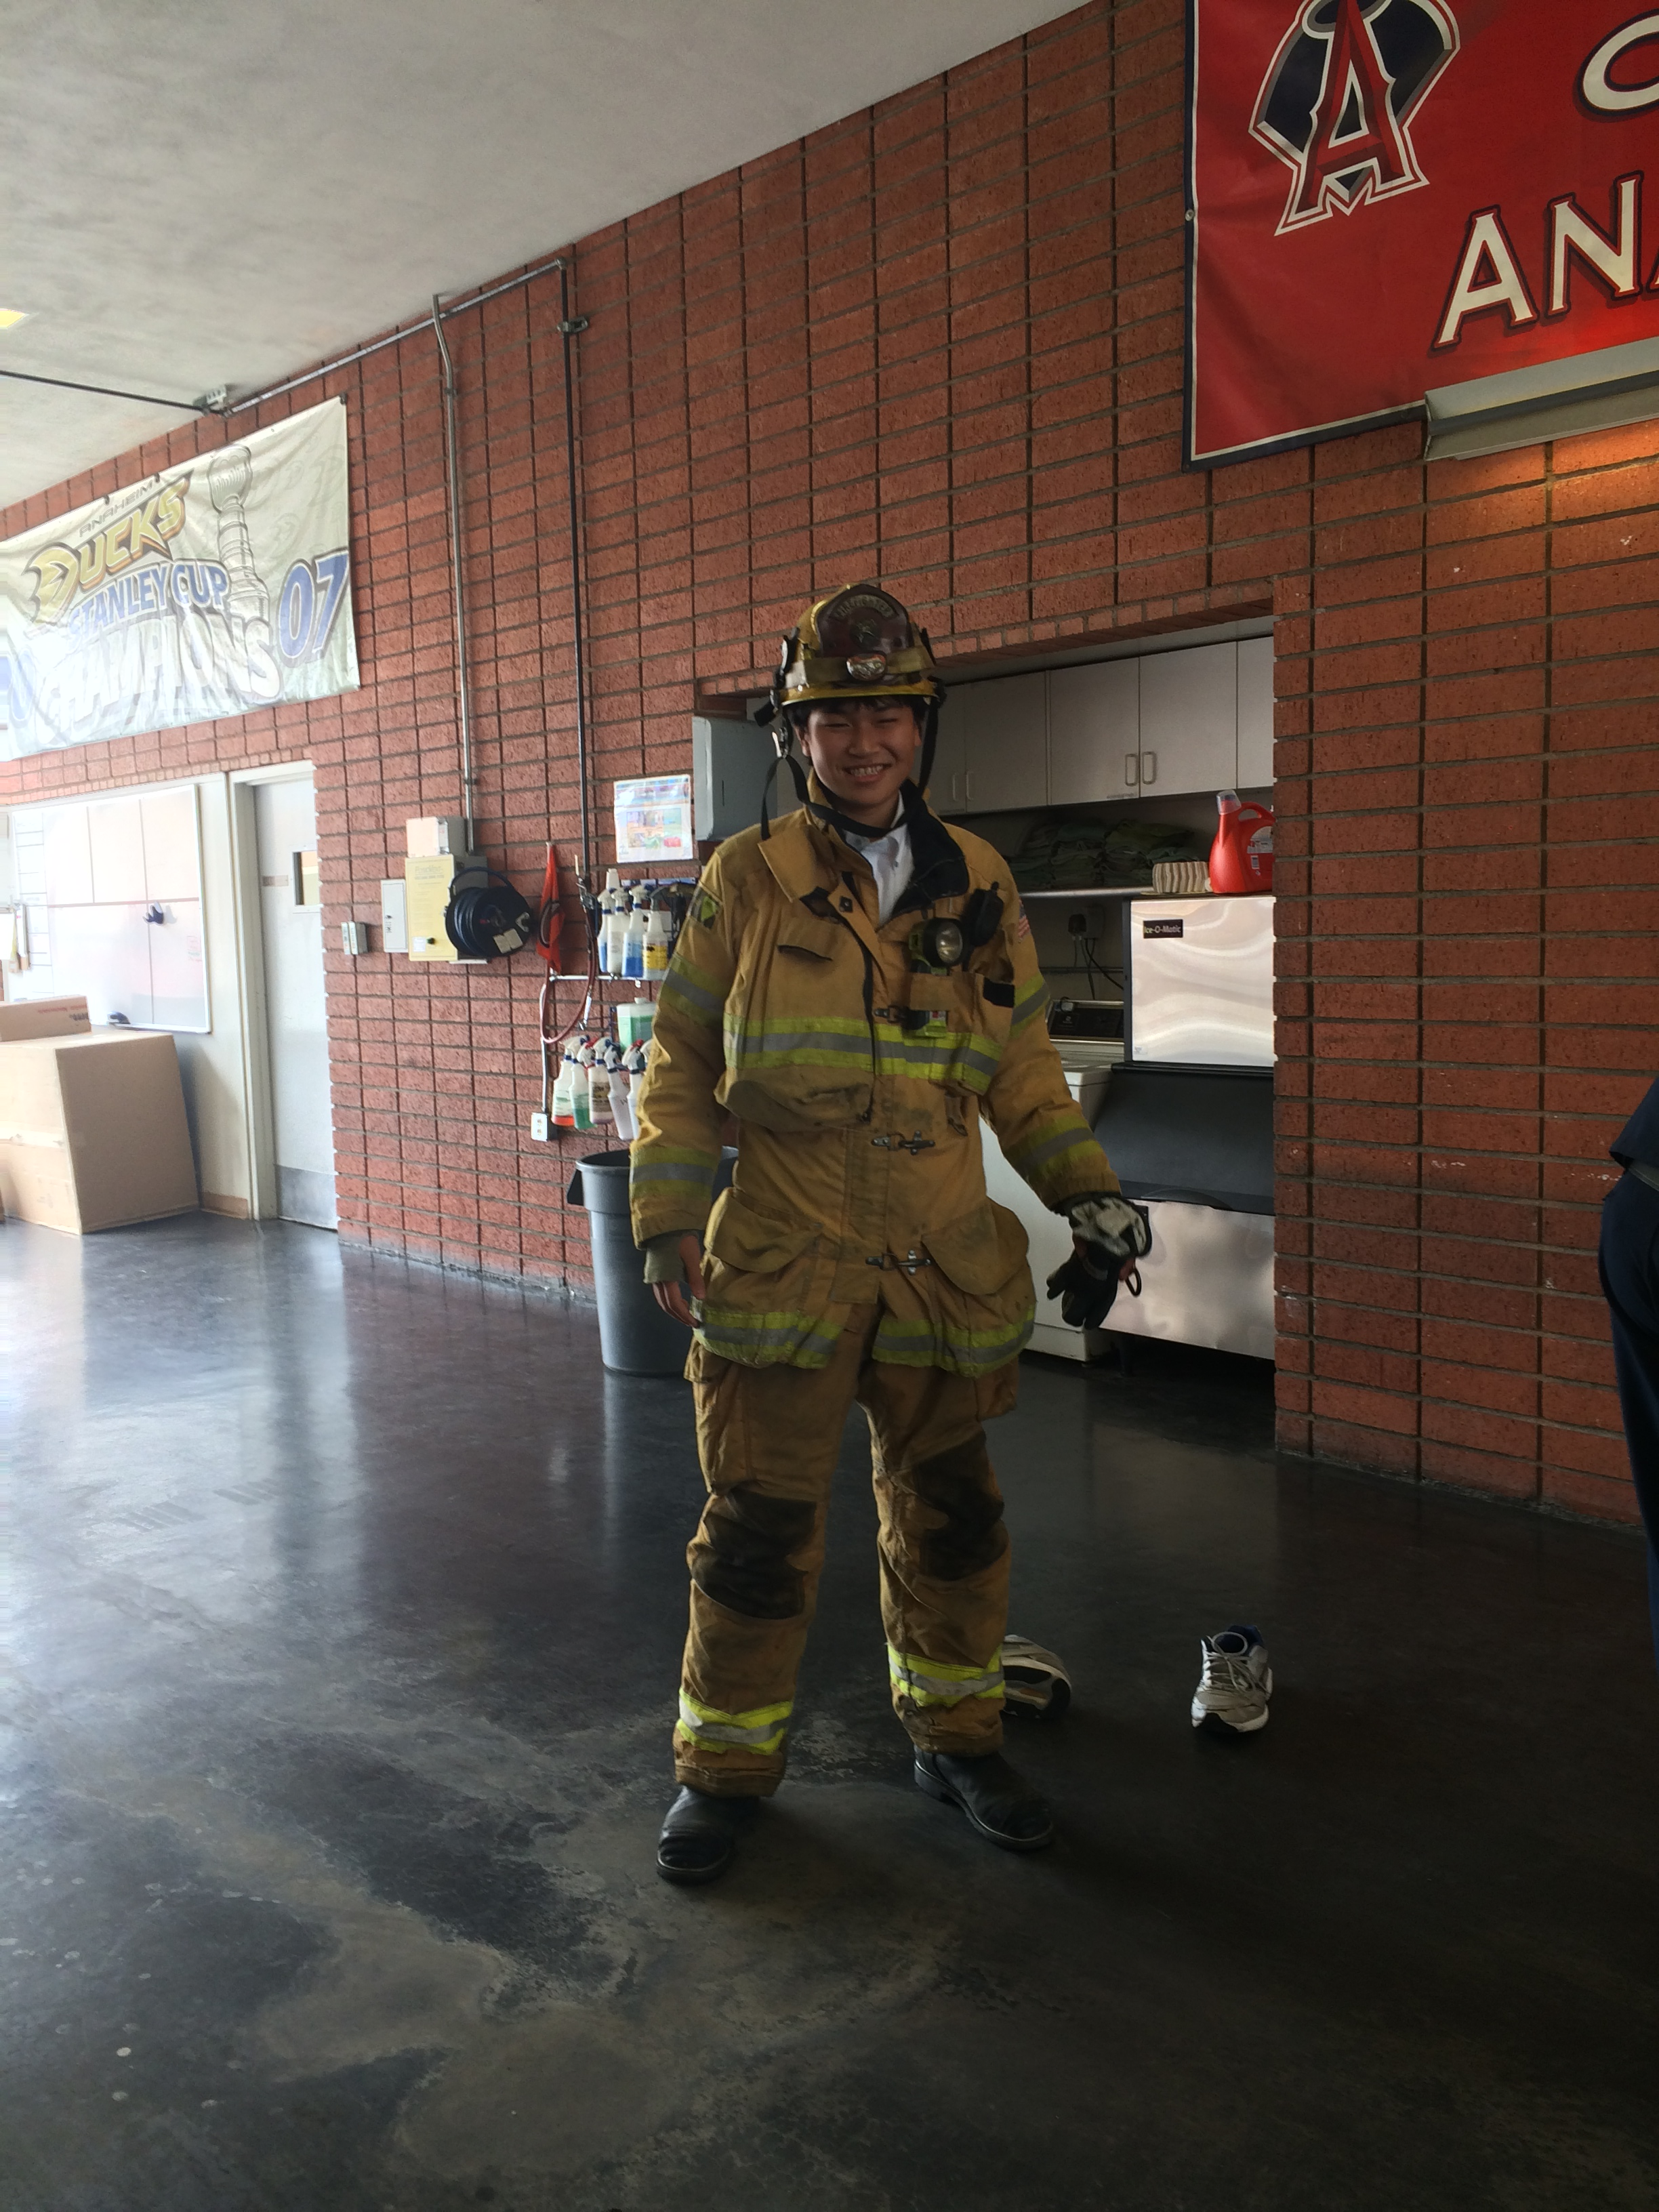 One student trying on firefighter jacket, pants, and helmet.